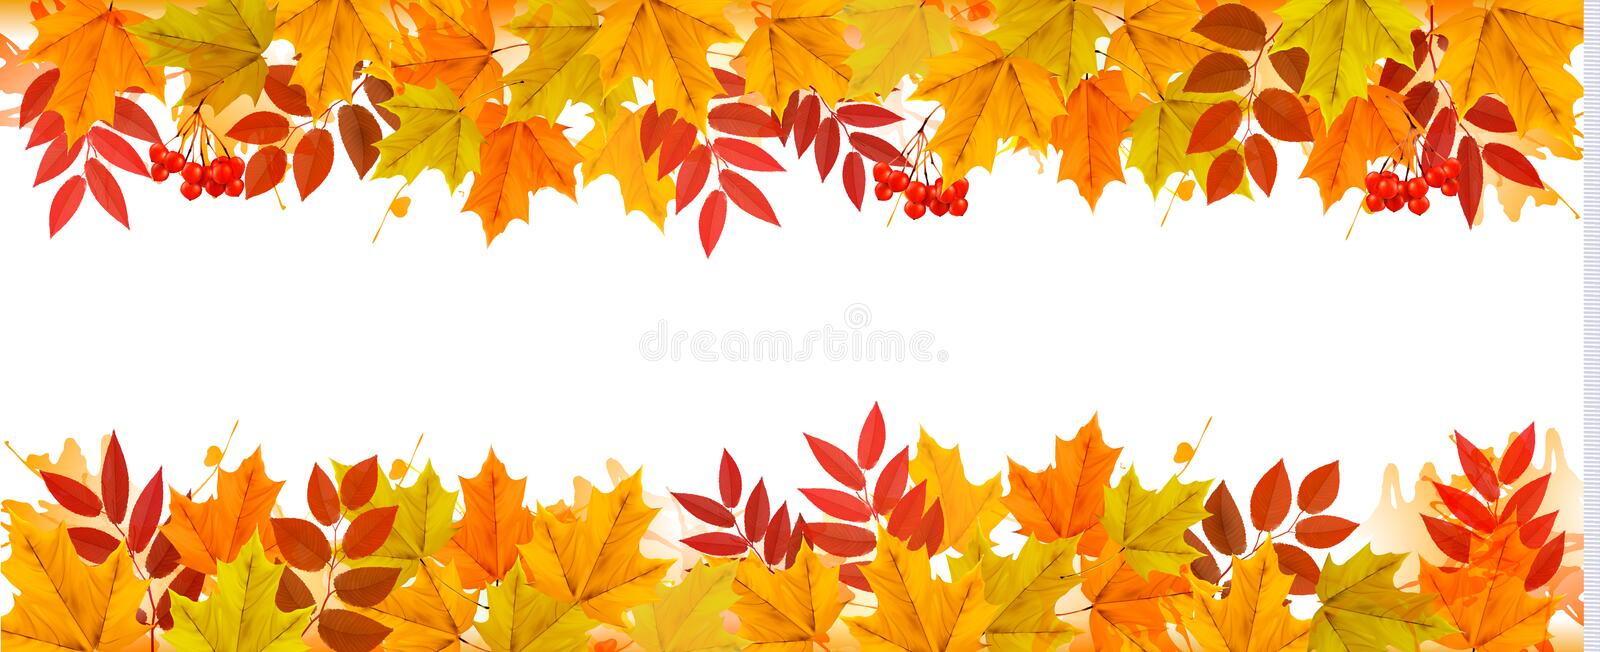 Panorama-Fall Autumn Colorful Leaves Background vektor abbildung